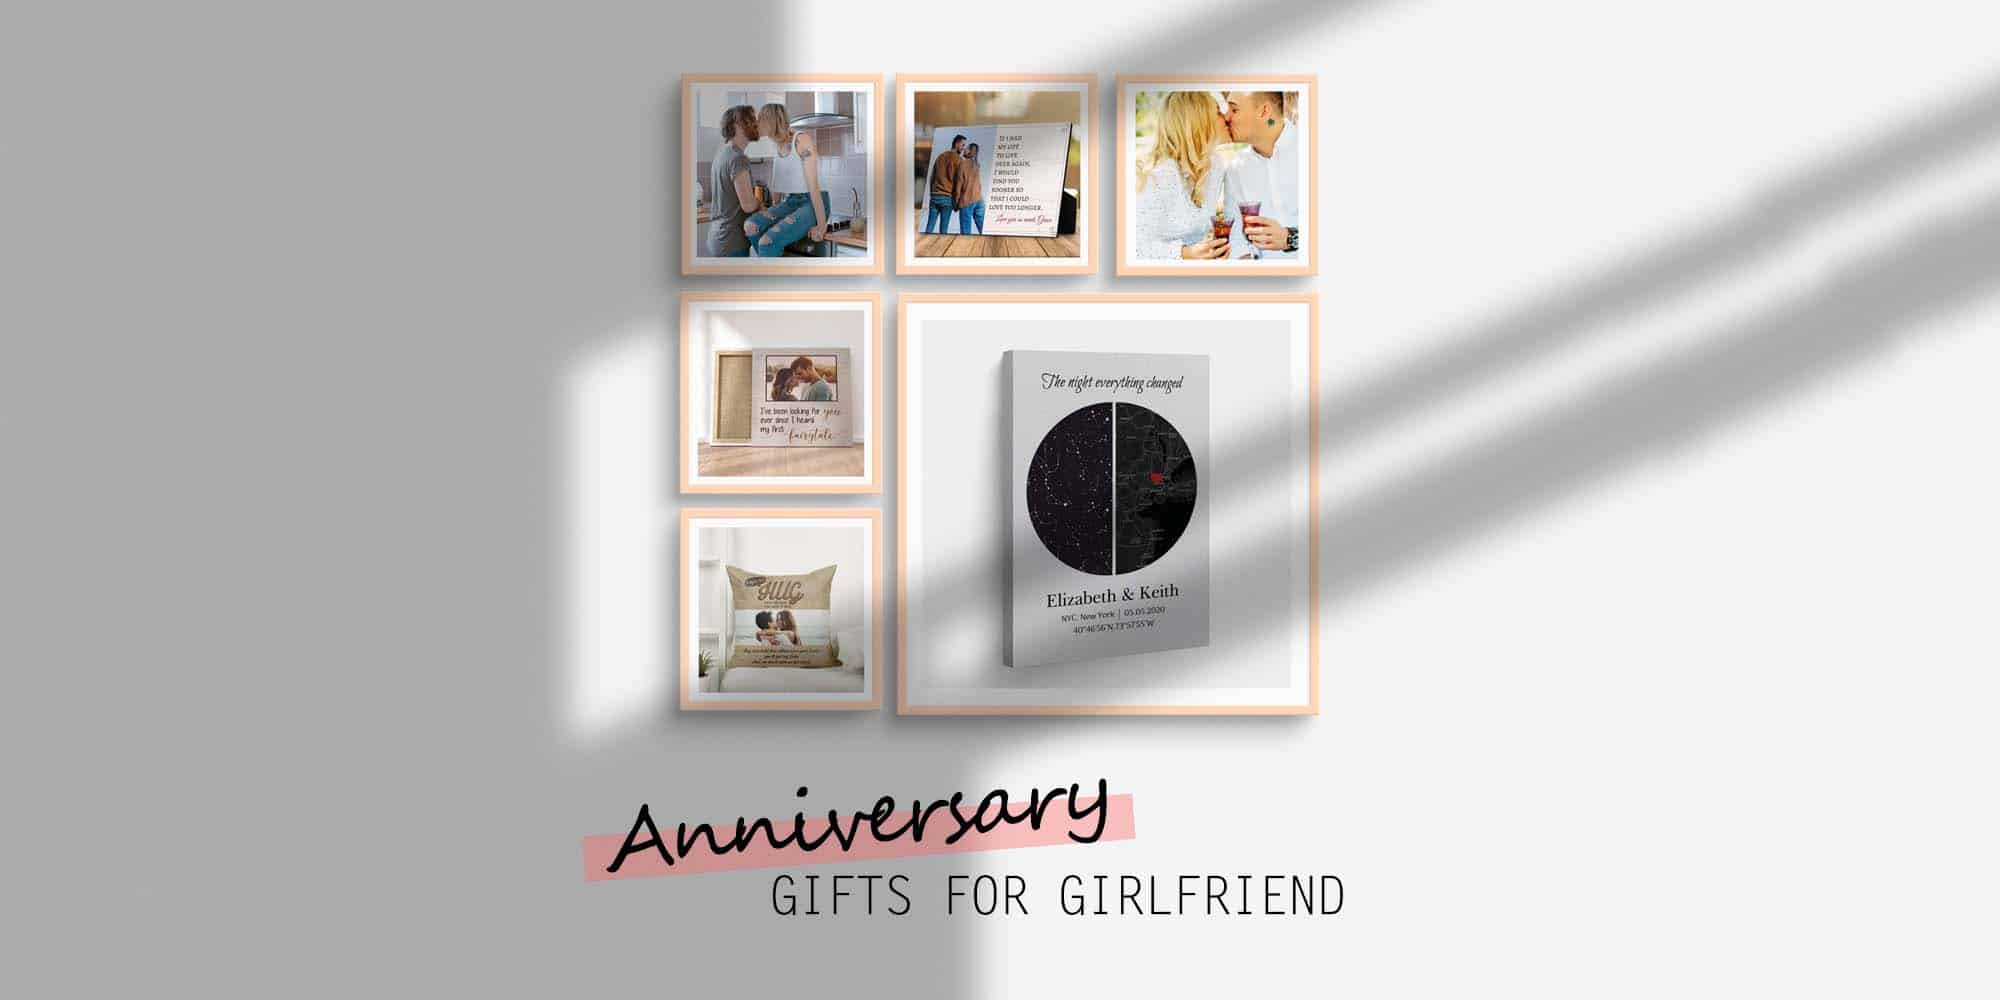 30+ Best Dating Anniversary Gifts for Your Girlfriend That She'll Love (2021)